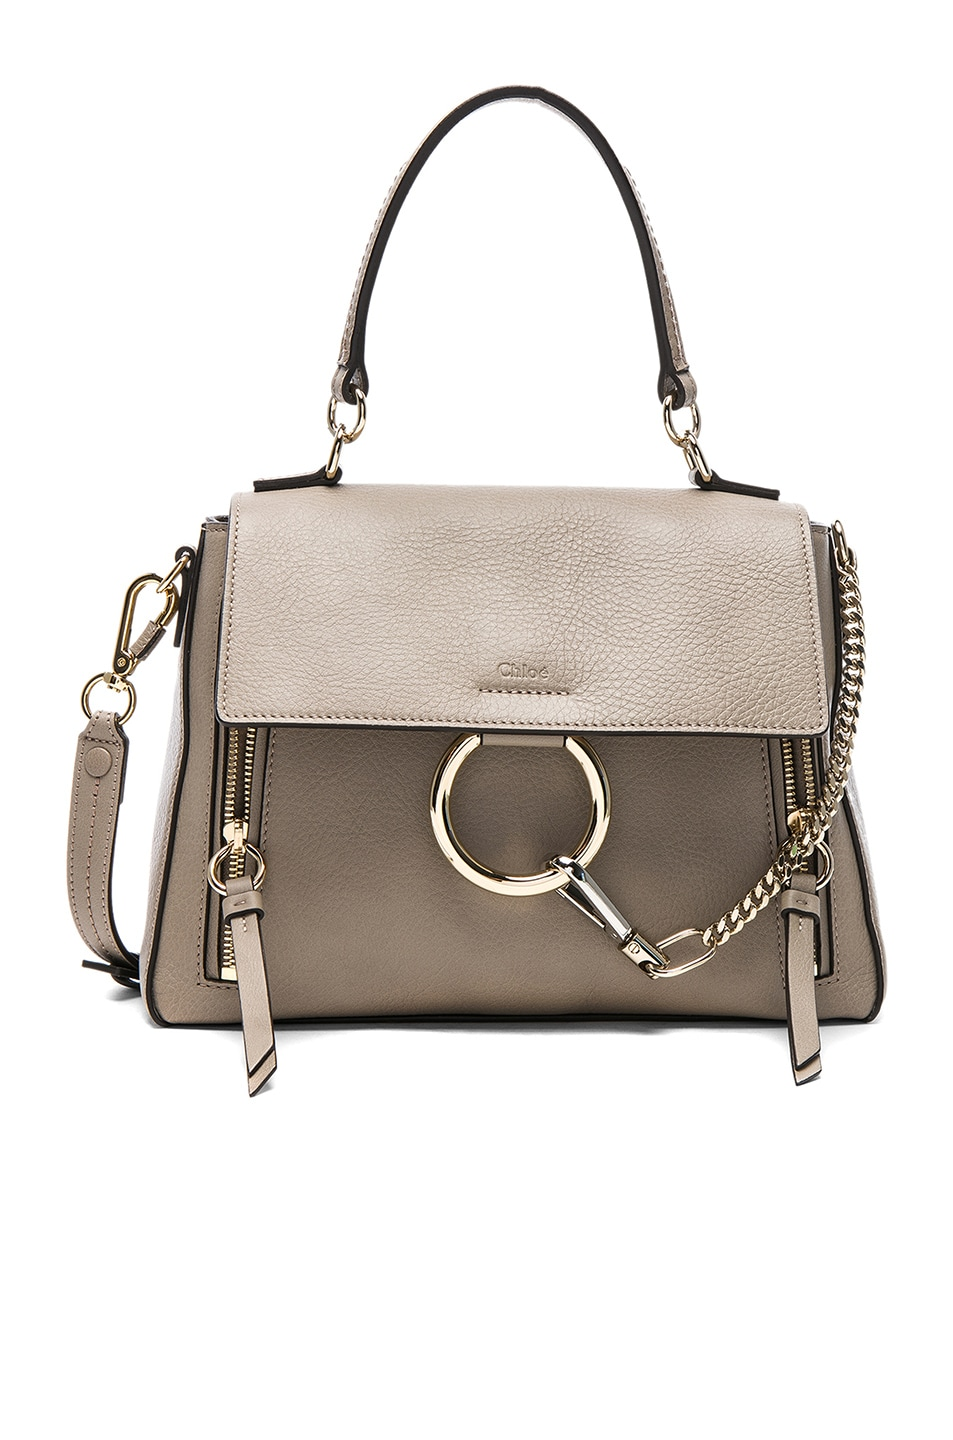 Image 1 of Chloe Small Faye Day Bag Calfskin & Suede in Motty Grey